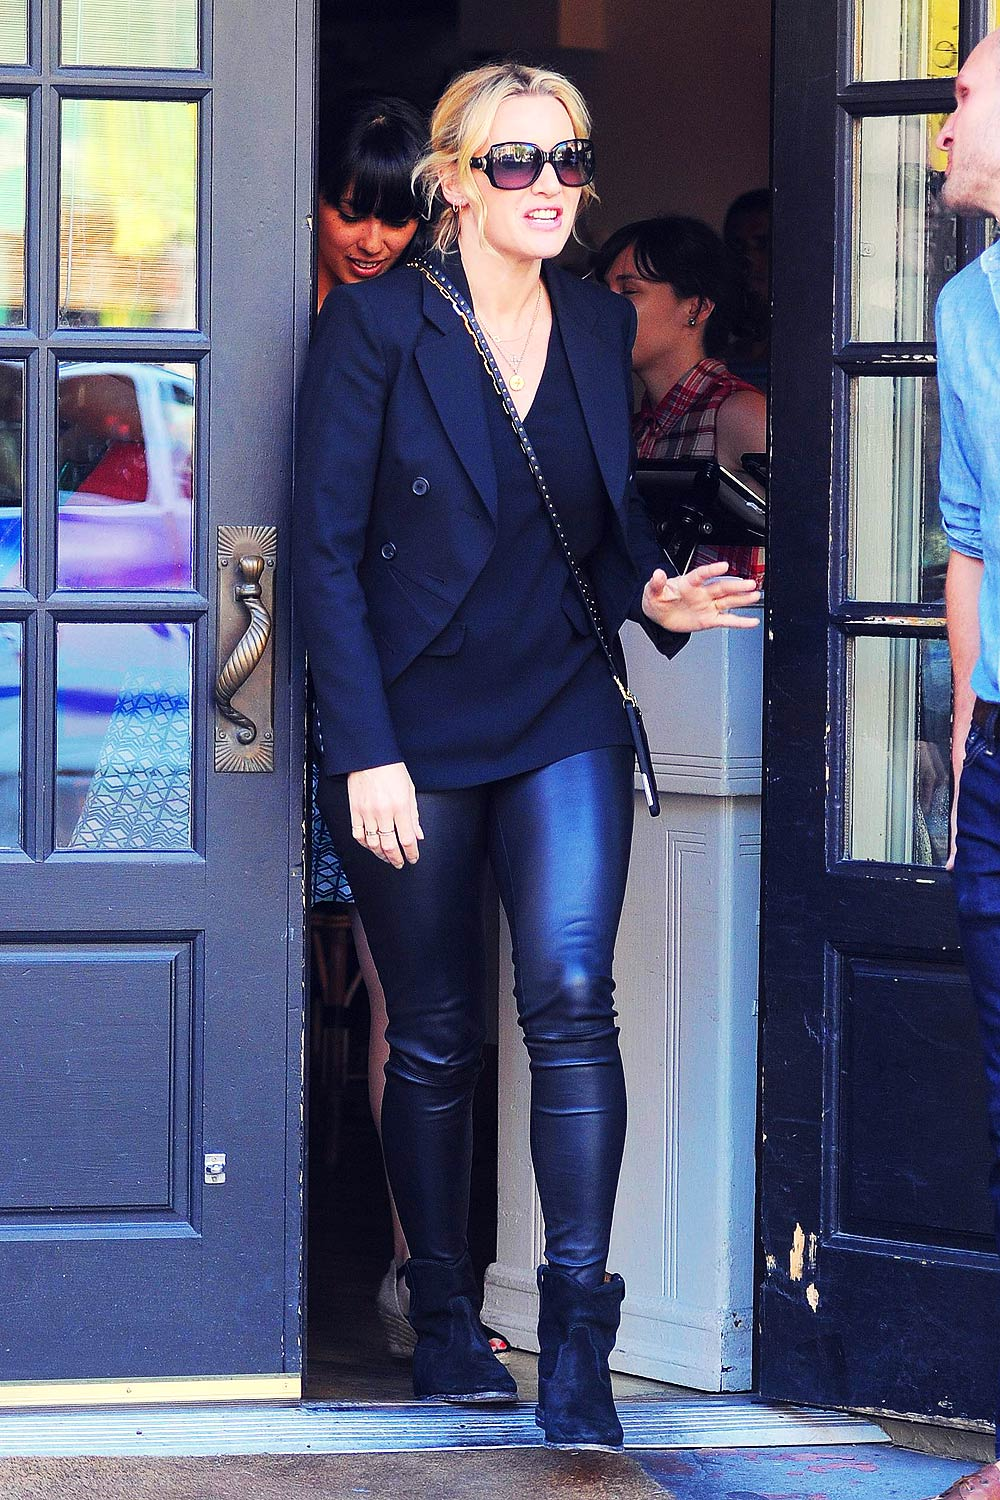 Kate Winslet Gets Lunch At Cafe Cluny Leather Celebrities